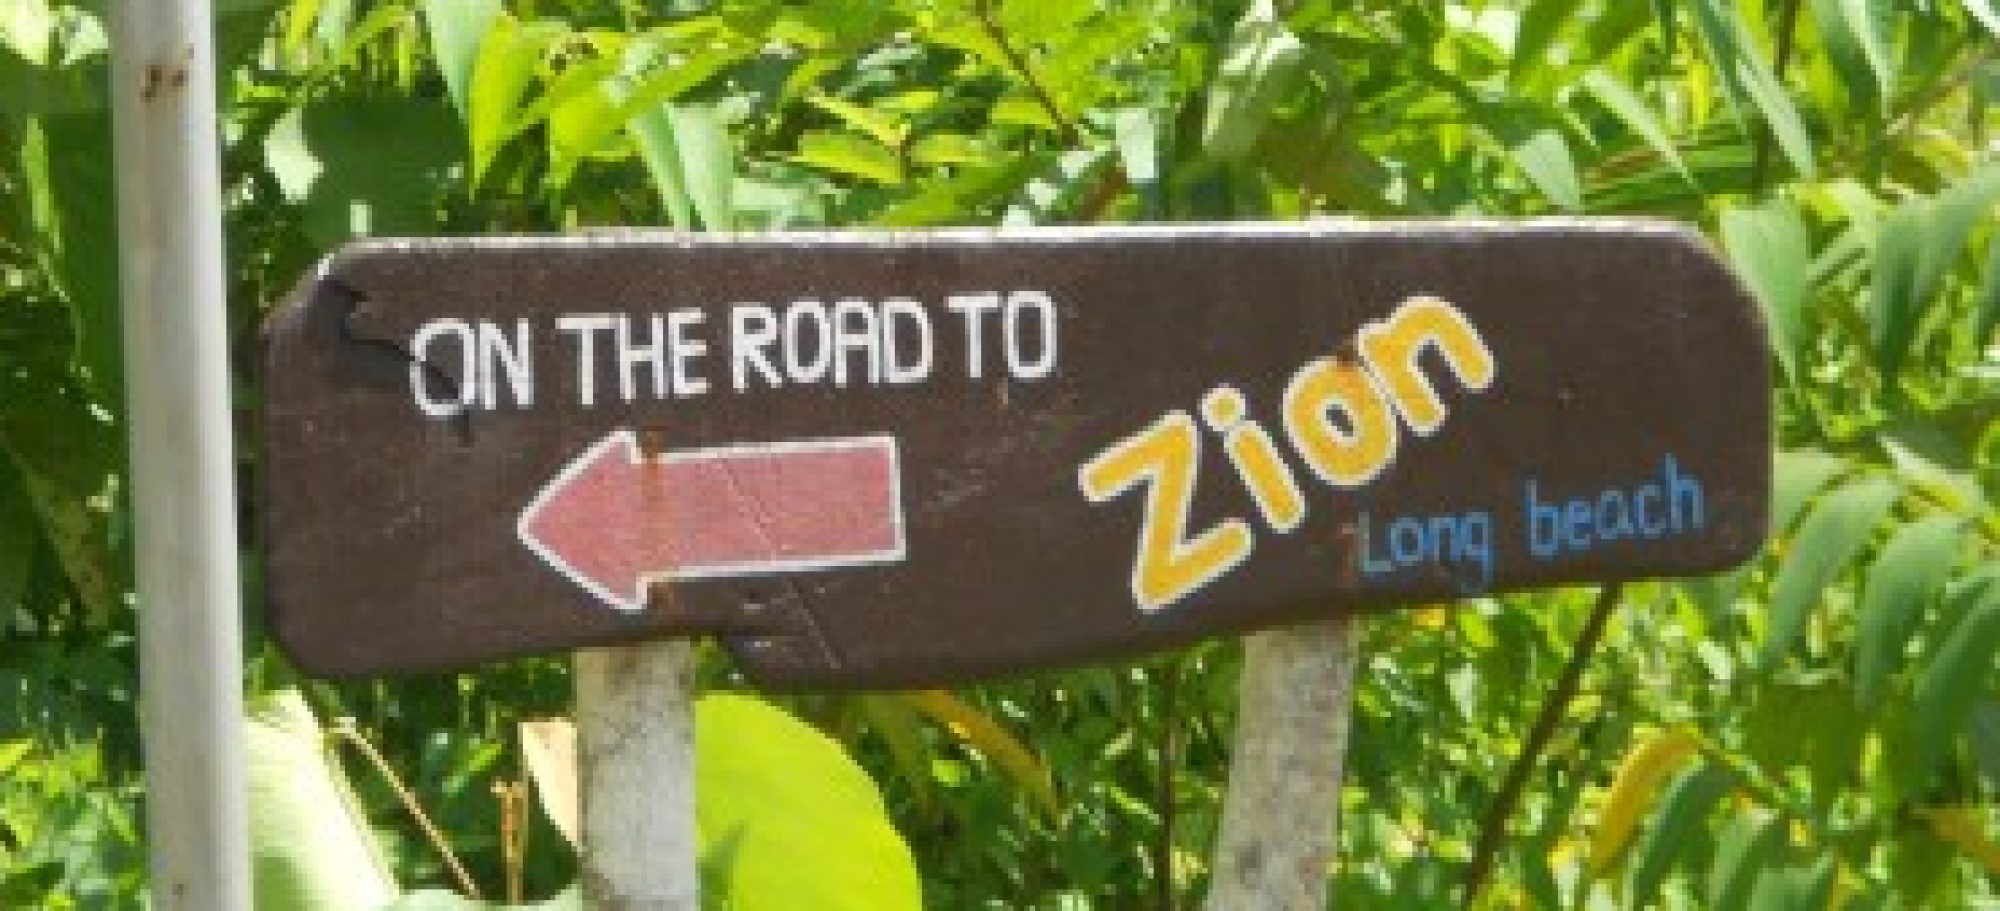 On the Road to Zion